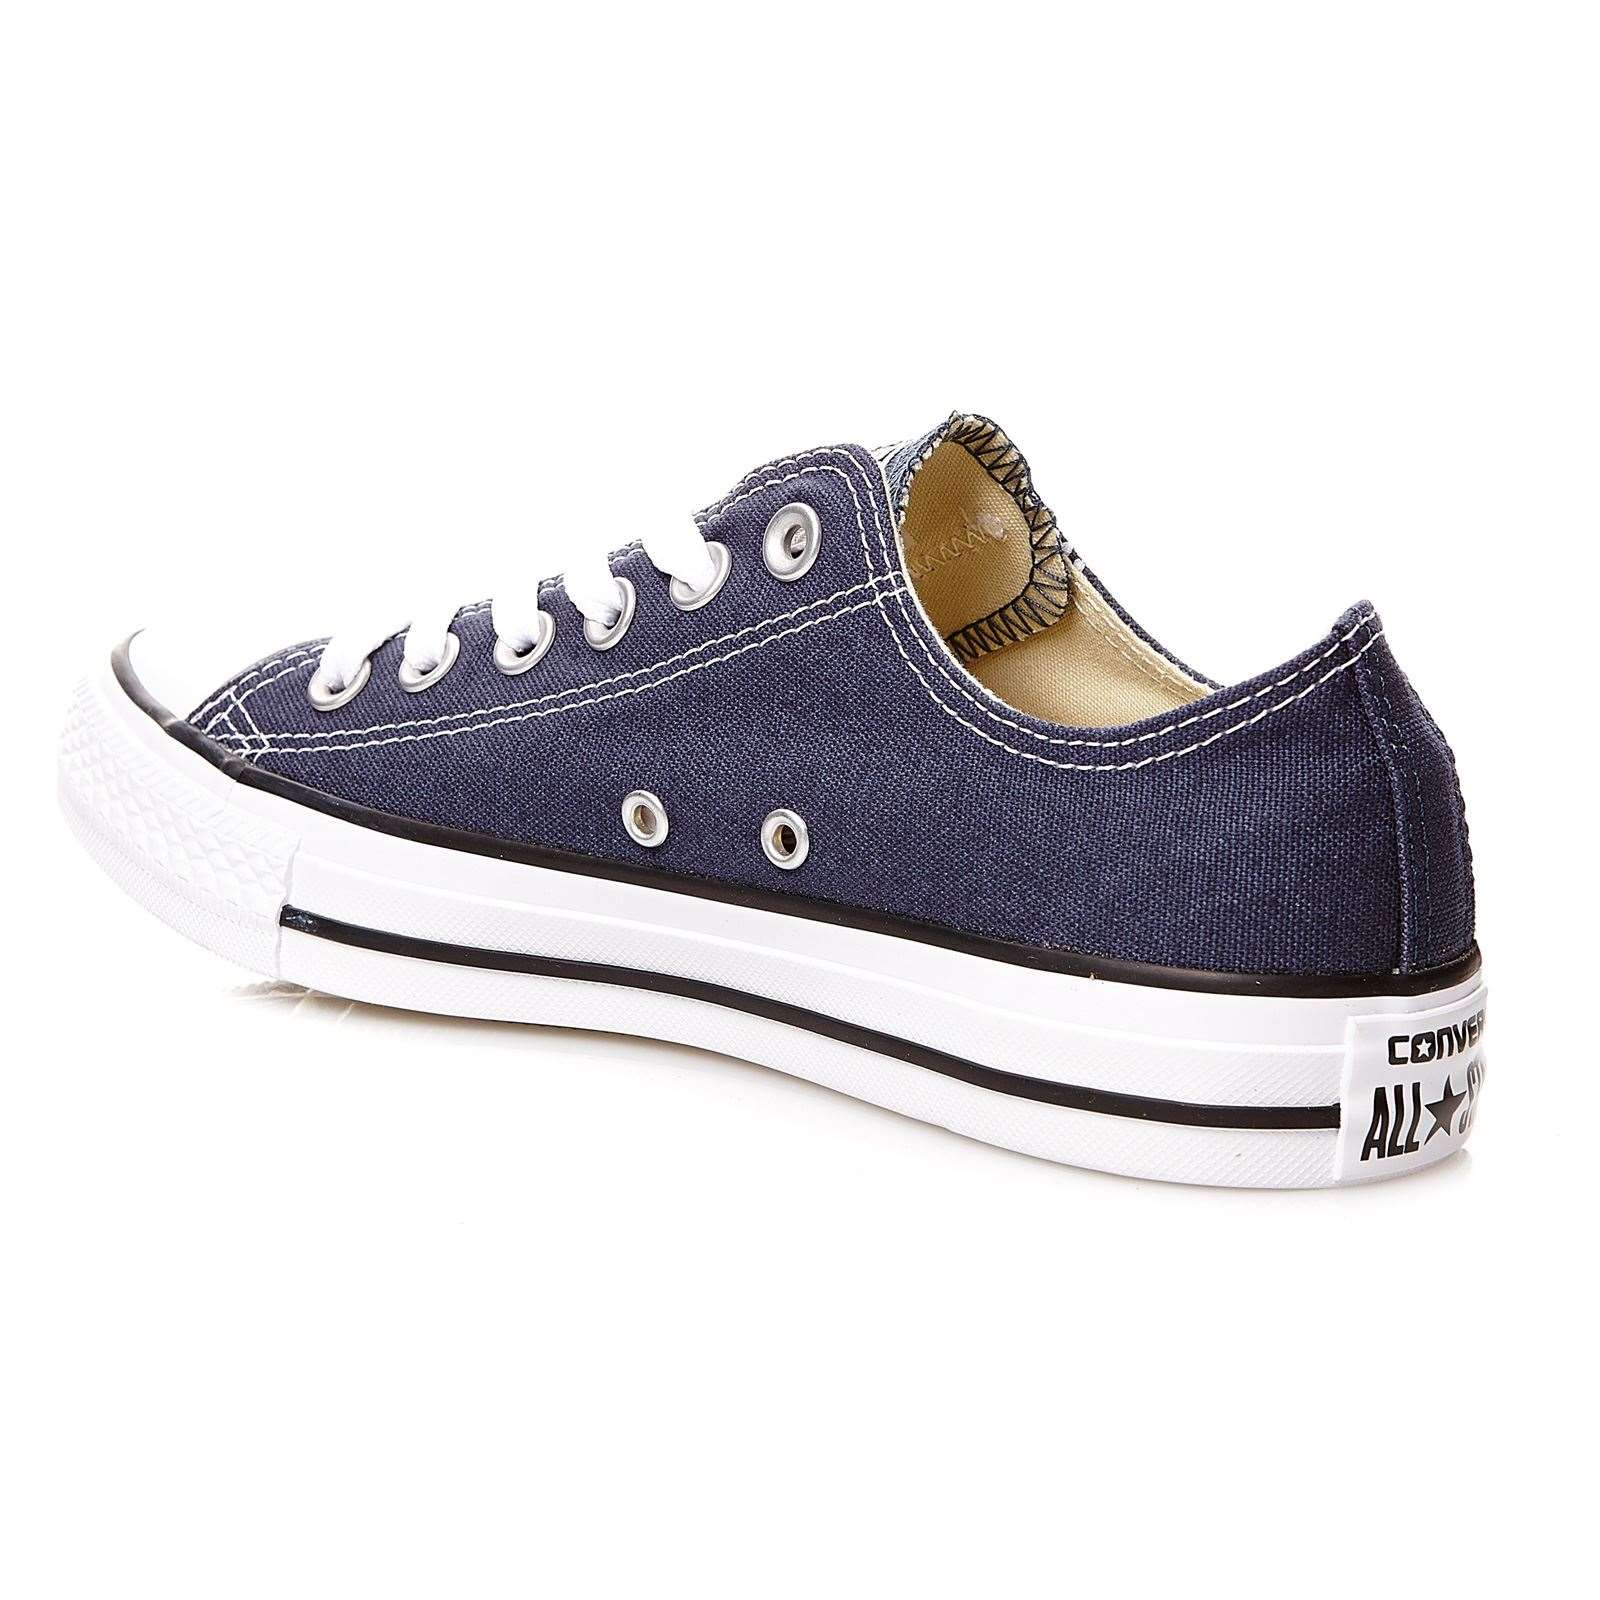 converse chuck taylor all star ox baskets bleu marine brandalley. Black Bedroom Furniture Sets. Home Design Ideas